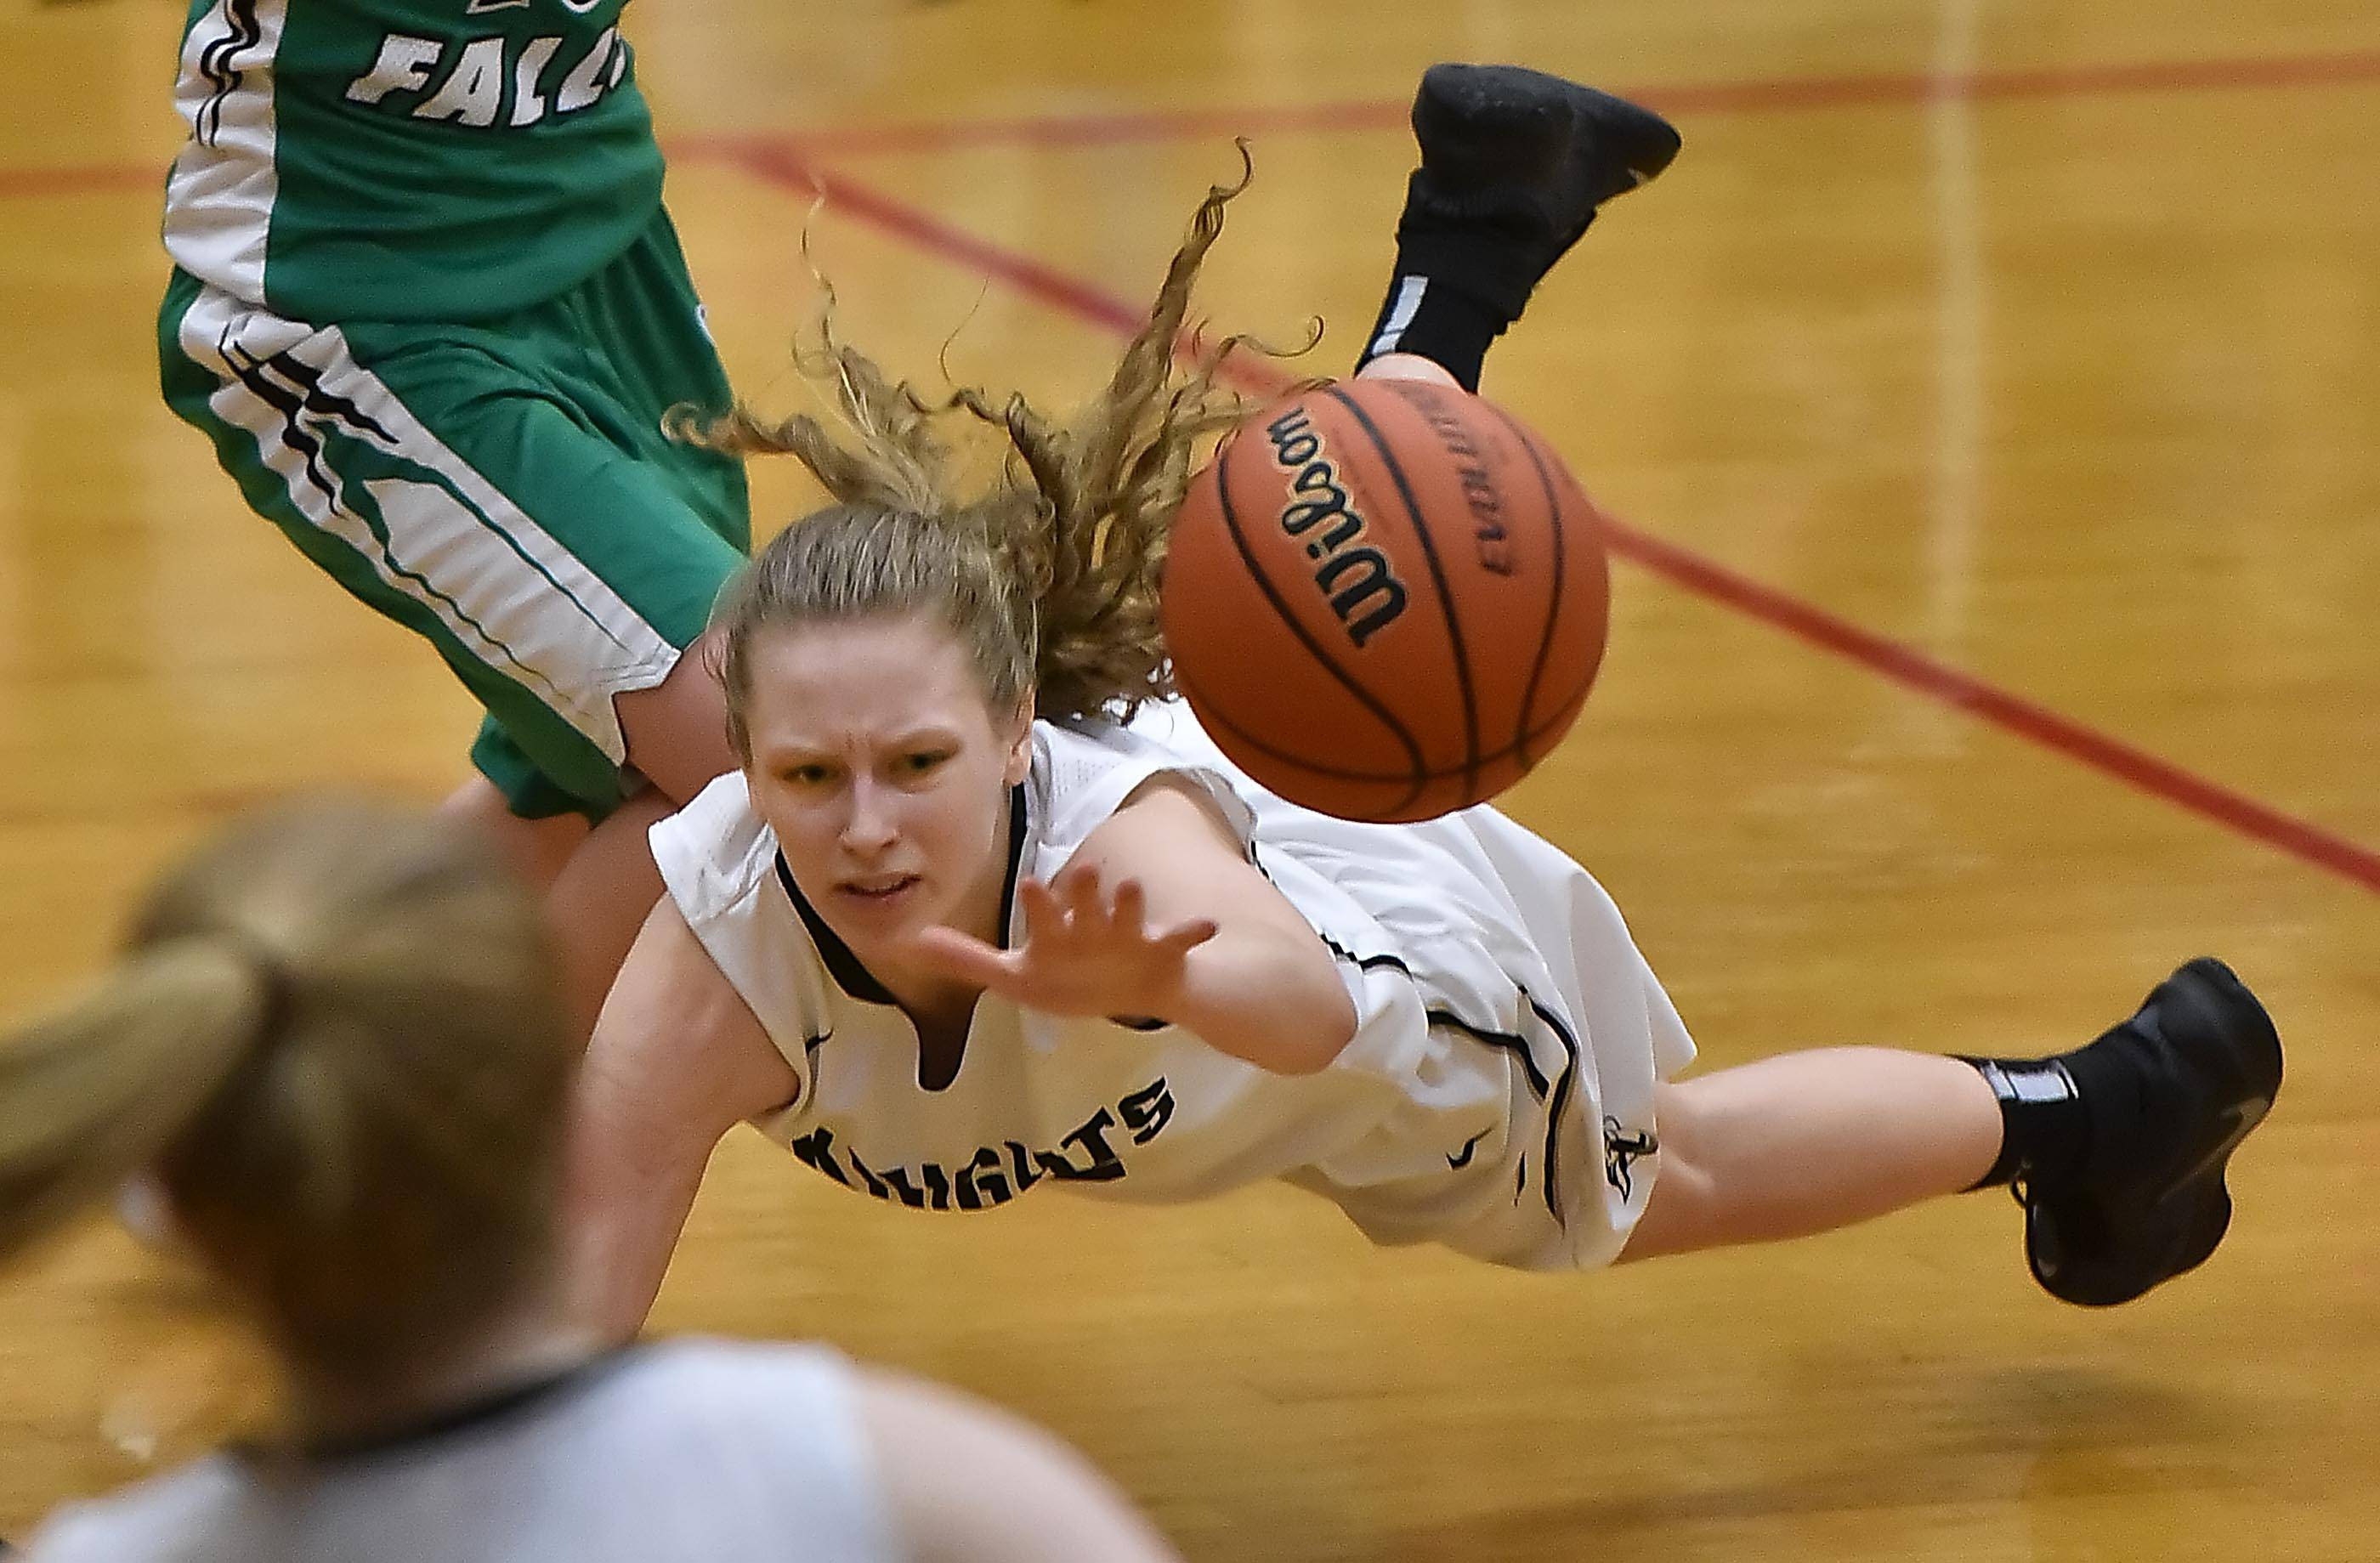 Kaneland's Jamie Martens dives for the ball against Rock Falls in the Class 3A girls basketball sectional semifinal game Tuesday in Maple Park.